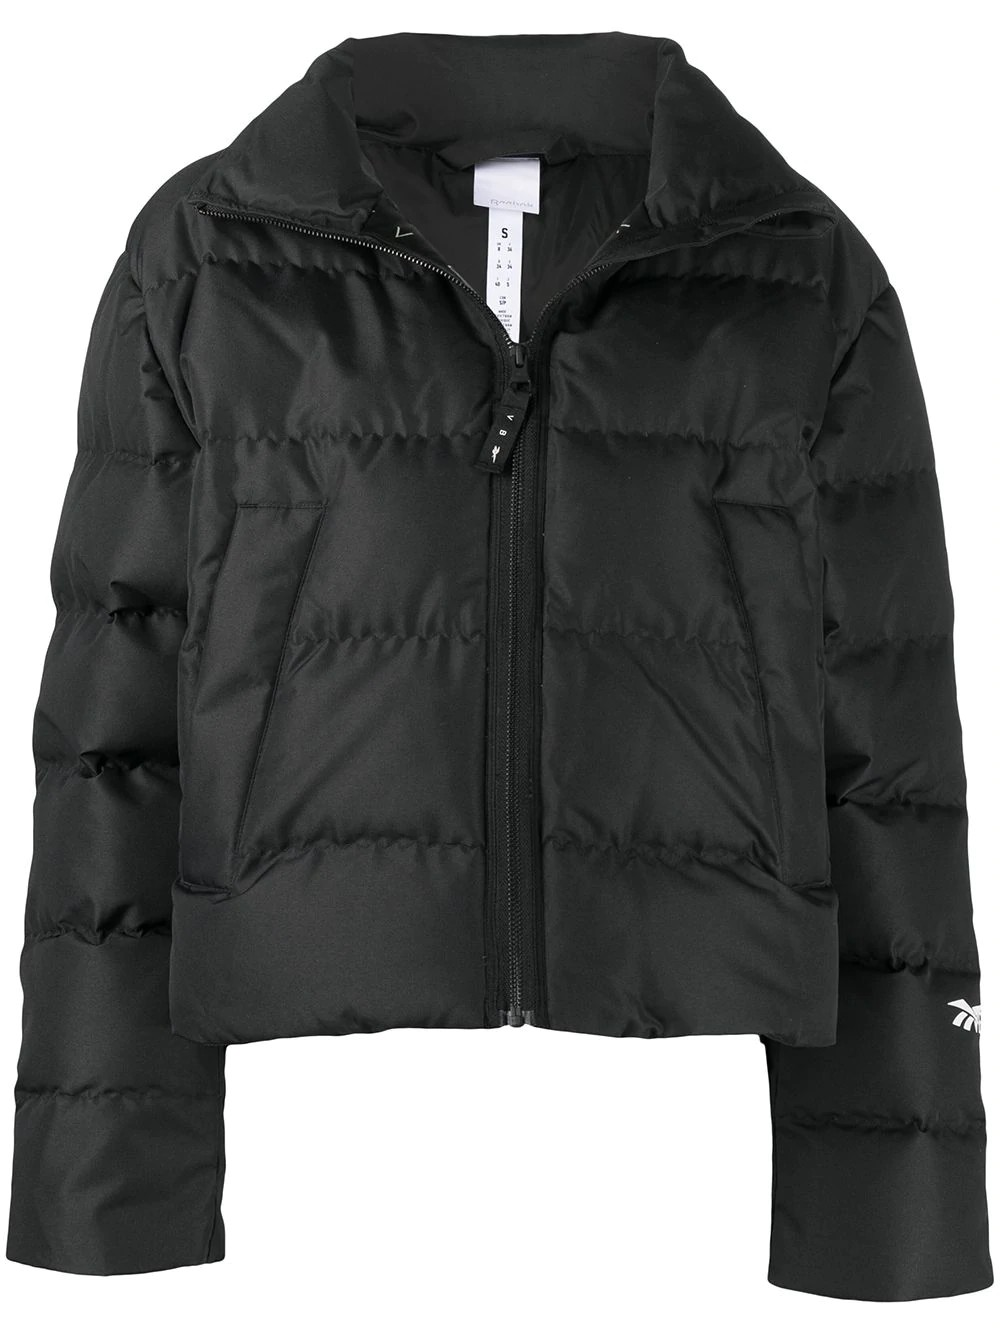 RBK VB CROPPED PUFFER